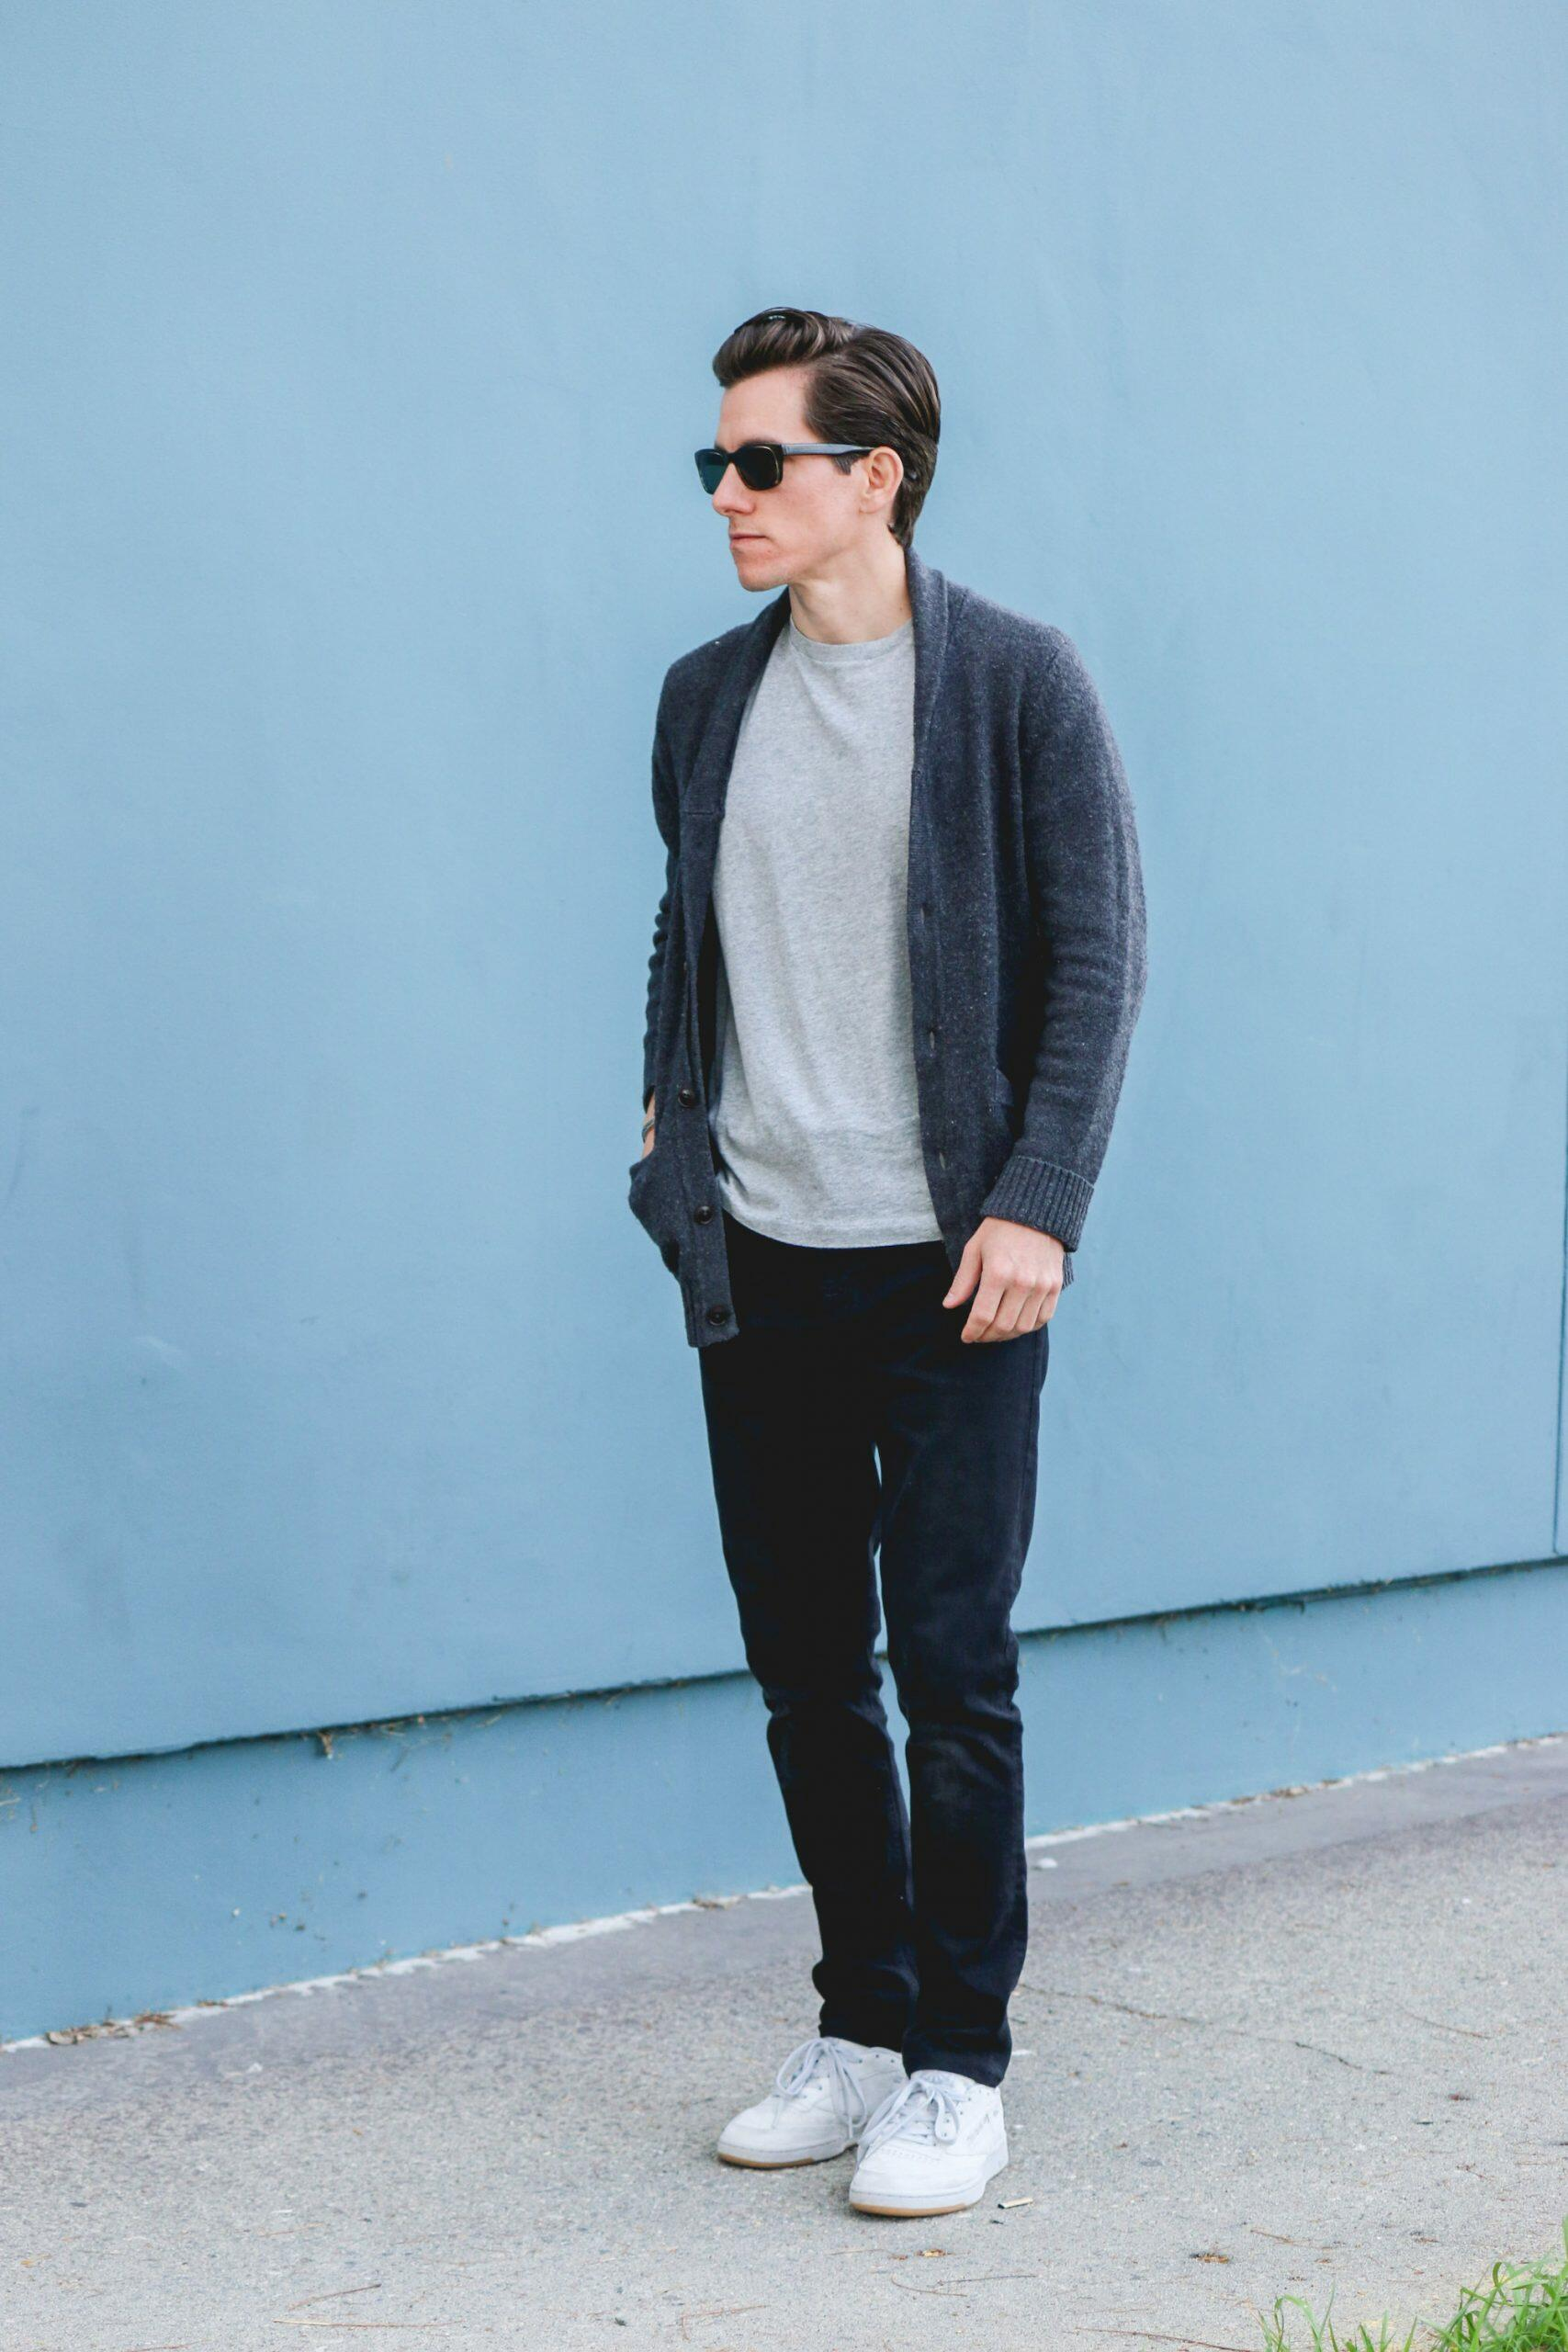 Shawl cardigan over t-shirt